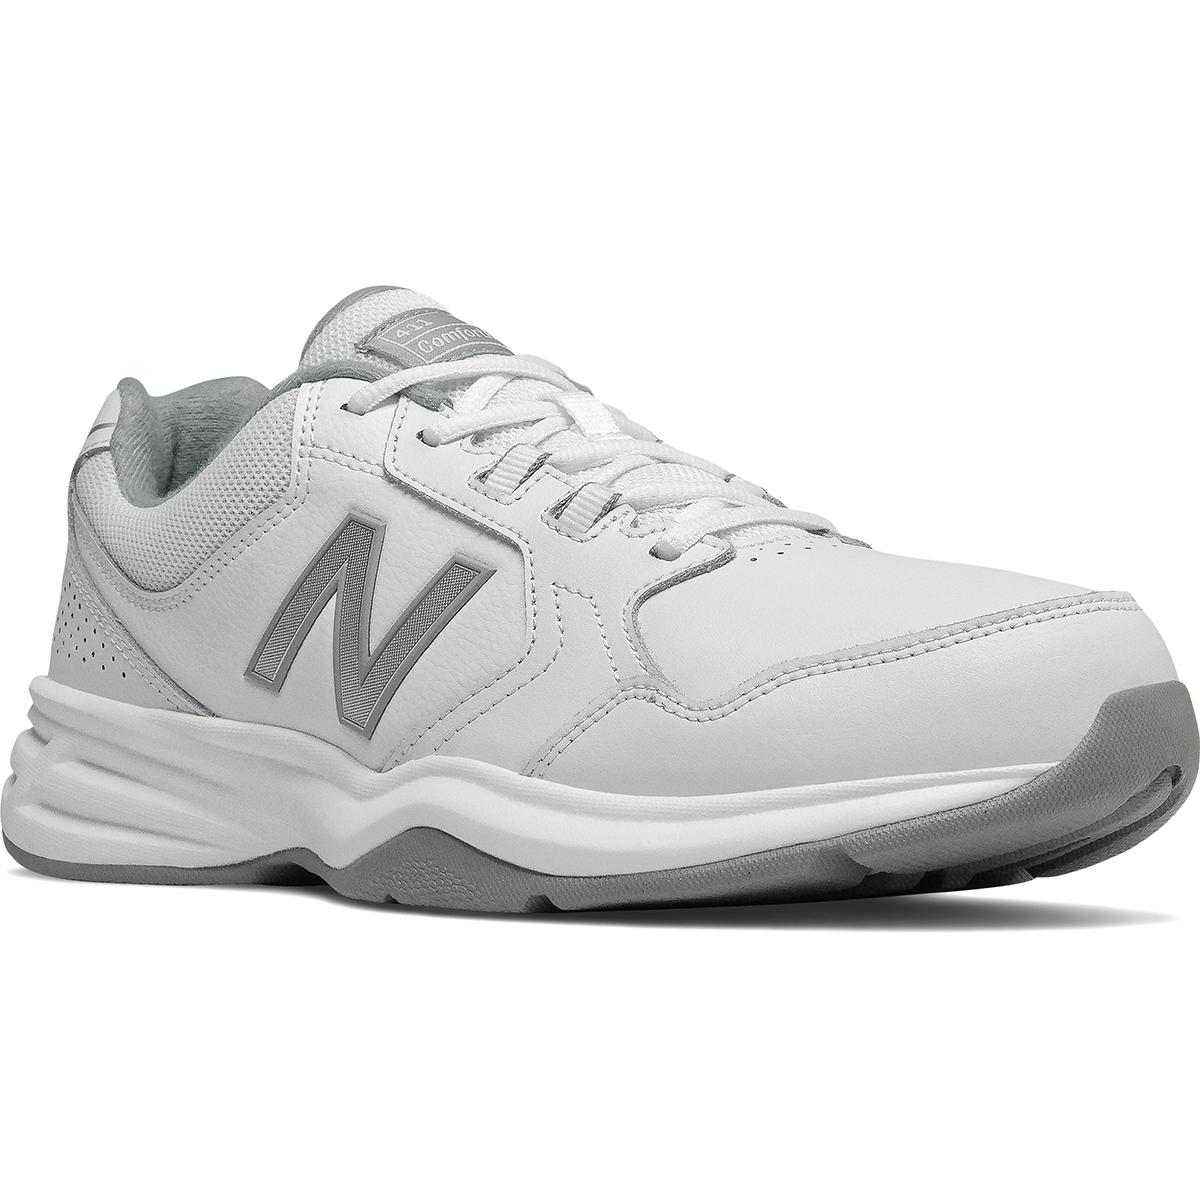 New Balance Men's 411 Walking Shoes, Wide - White, 11